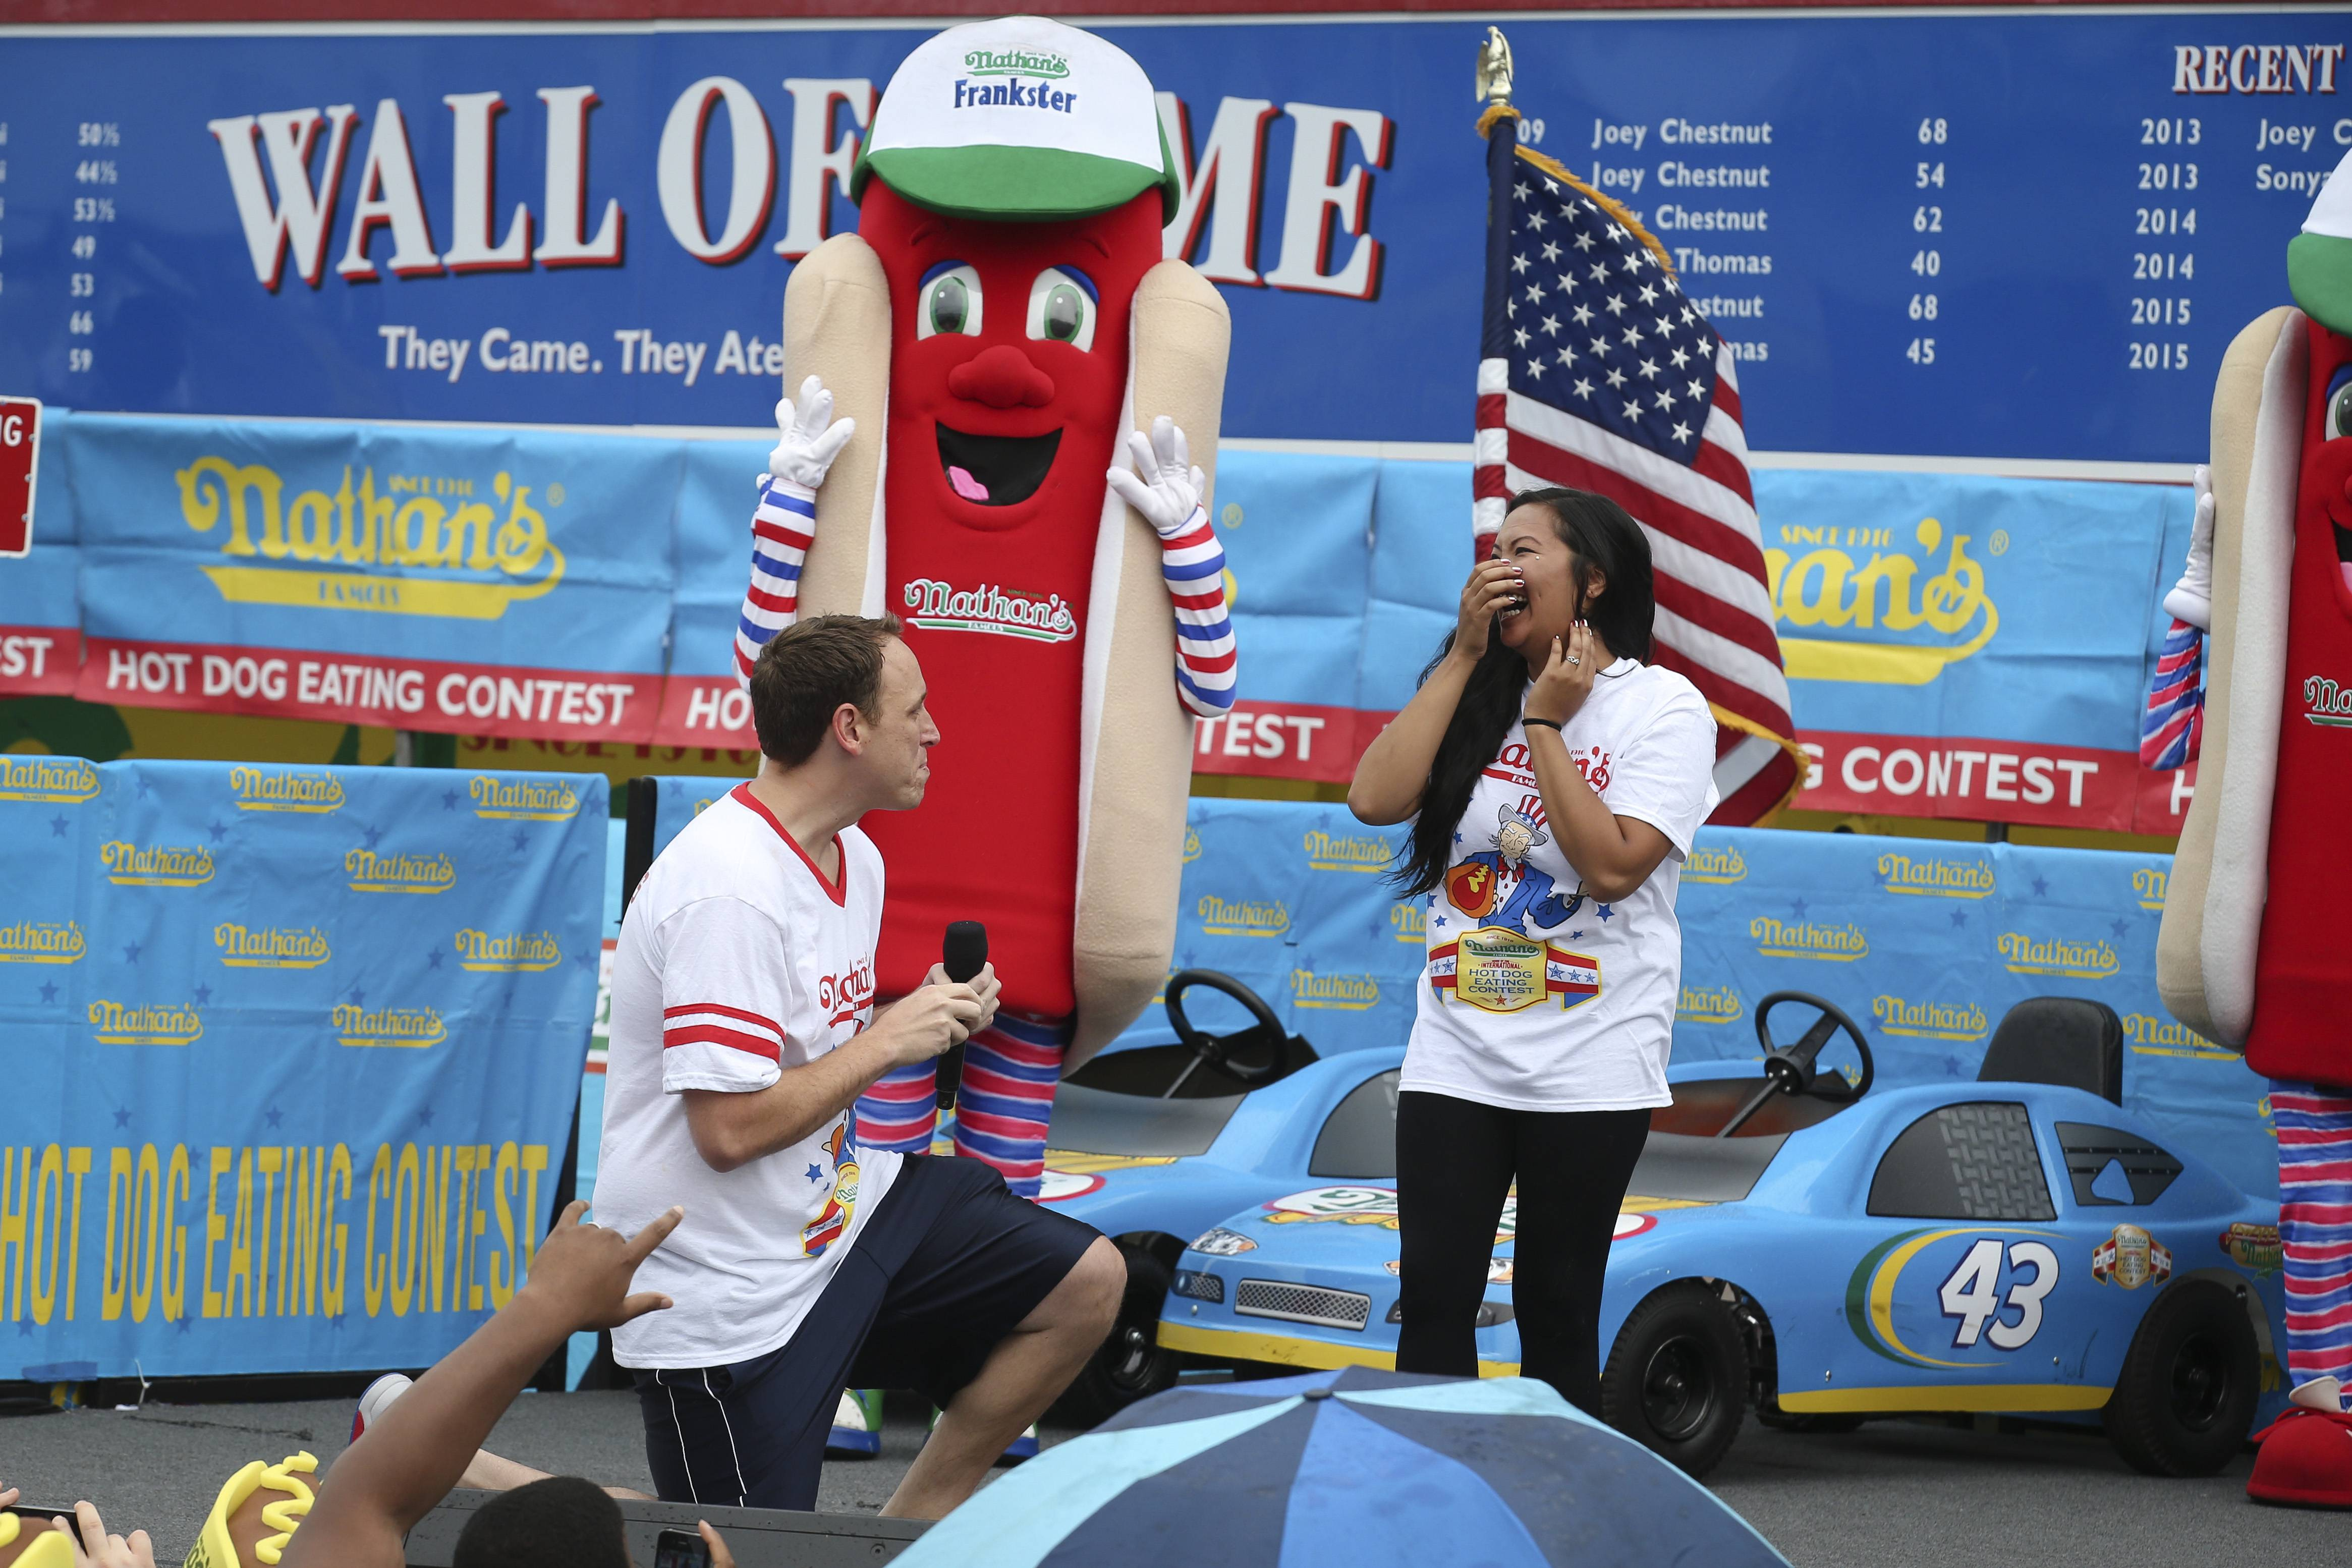 Competitive eater Joey Chestnut proposes to his girlfriend and fellow competitor Neslie Ricasa before the Nathan's Famous Fourth of July International Hot Dog Eating contest.